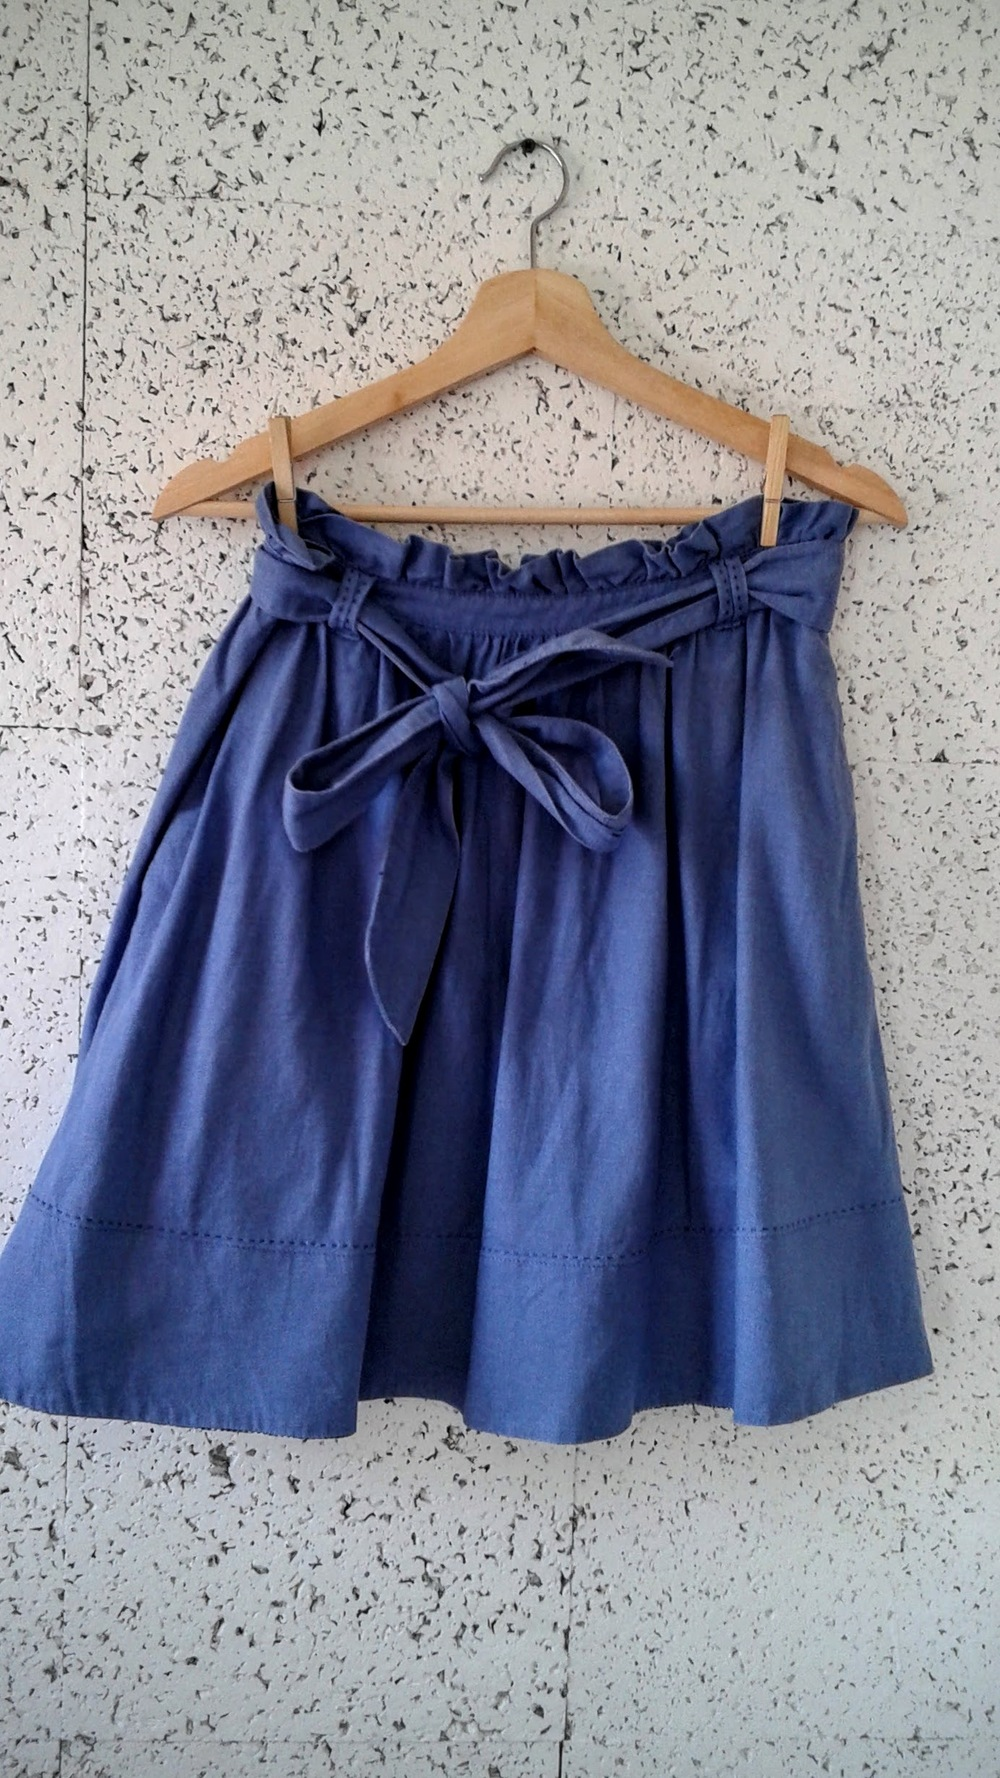 Odille skirt; Size 8, $26